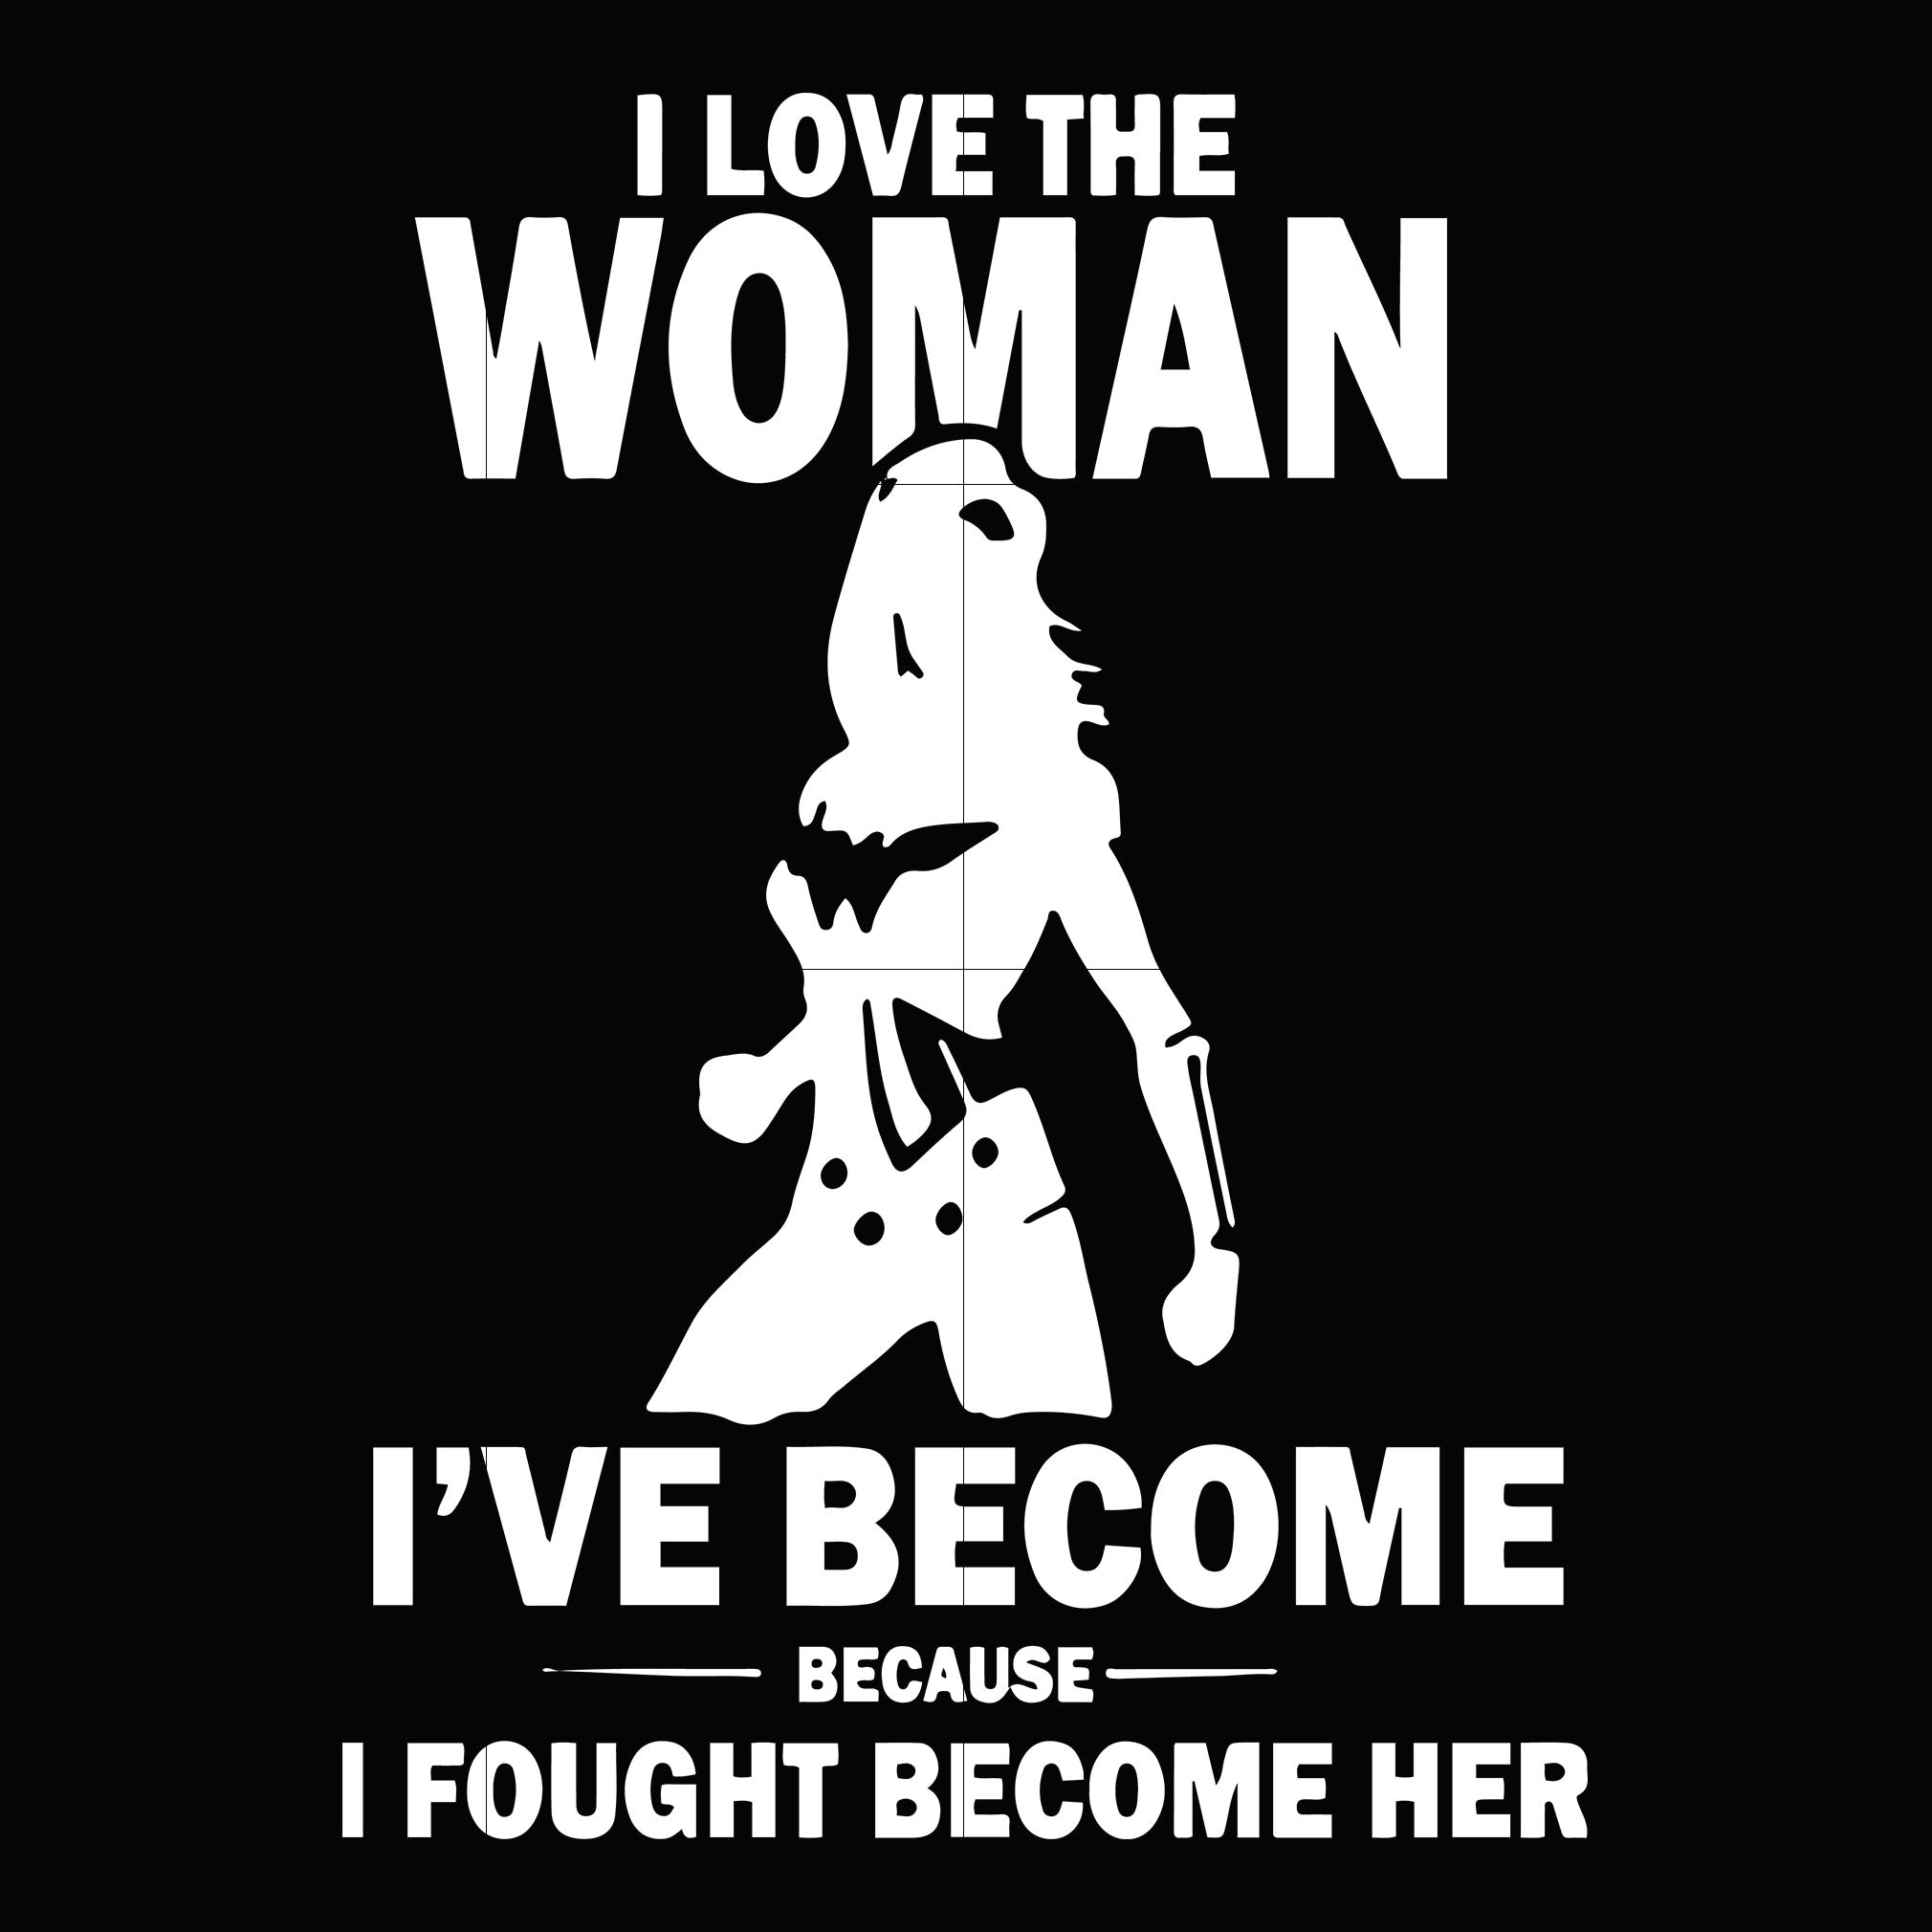 I love the woman i've become because i fought become her svg,dxf,eps,png digital file